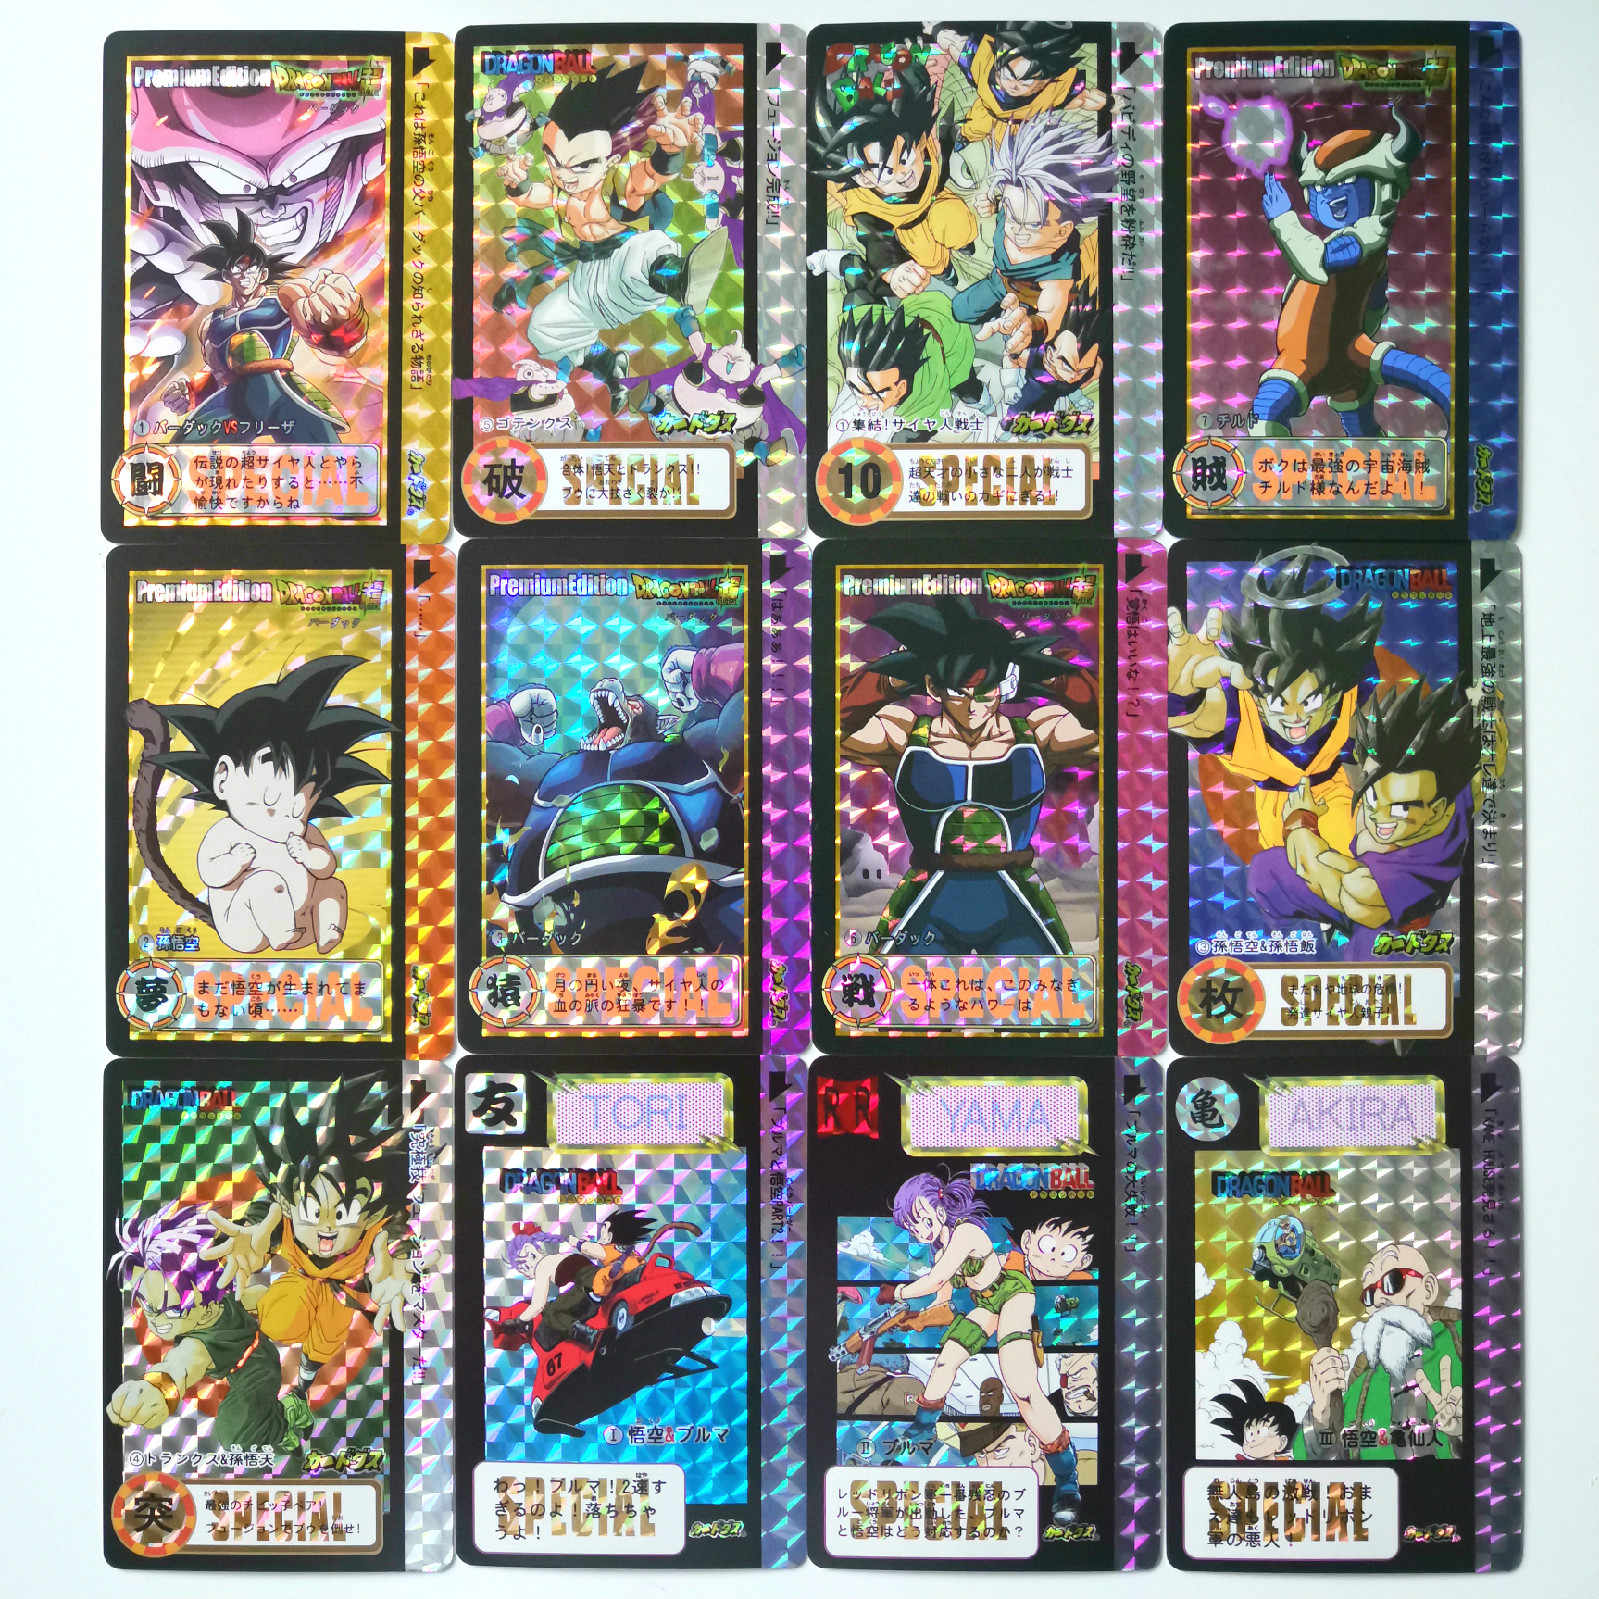 50pcs/set Super Dragon Ball Z Heroes Storm Clouds 11 Battle Card Ultra Instinct Goku Vegeta Game Collection Cards